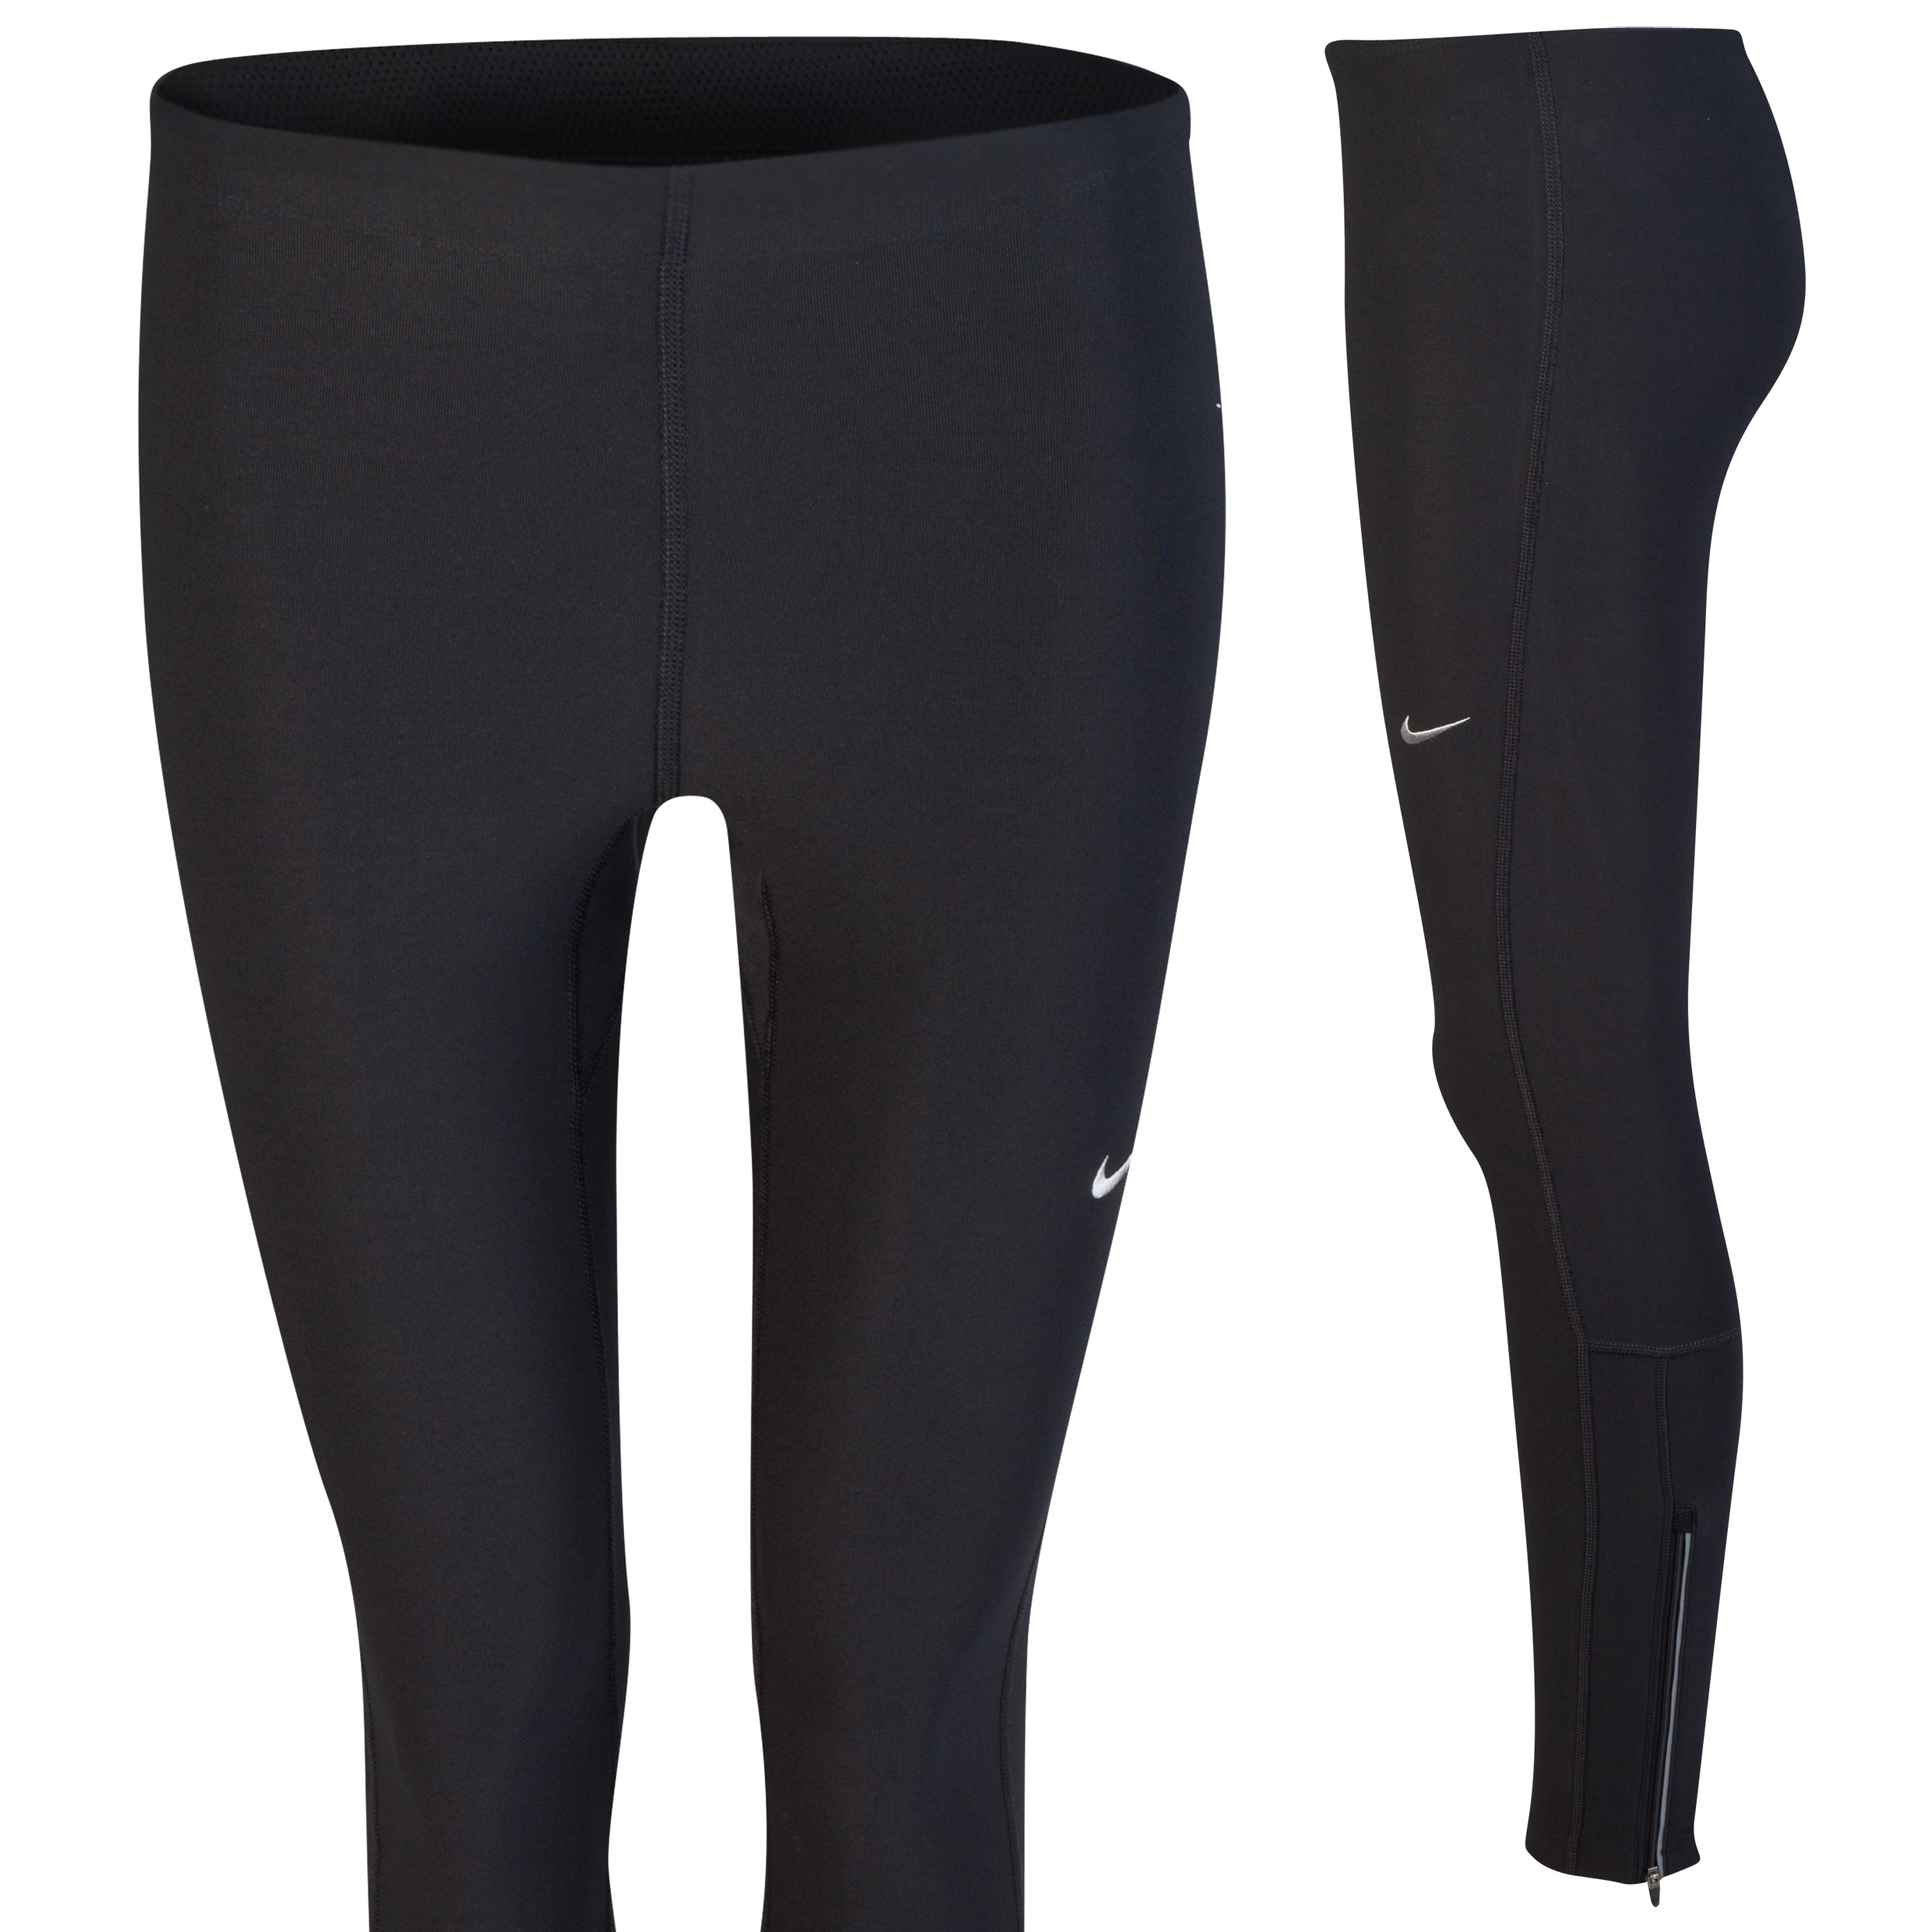 Nike Filament Tights - Black/Matte Silver